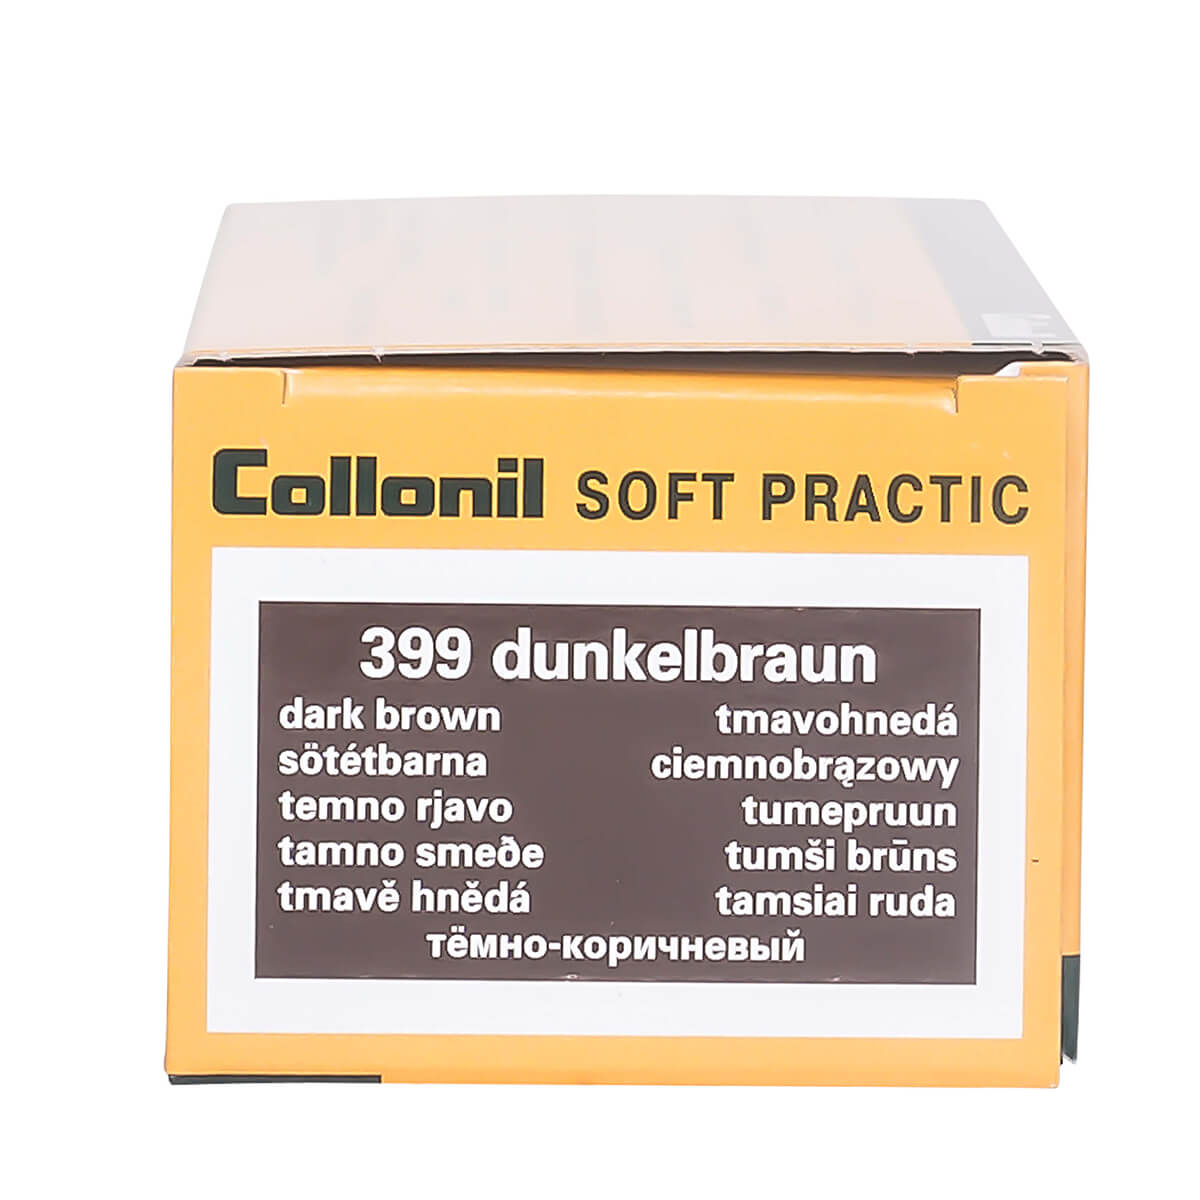 Collonil Creme SOFT PRACTIC dark brown